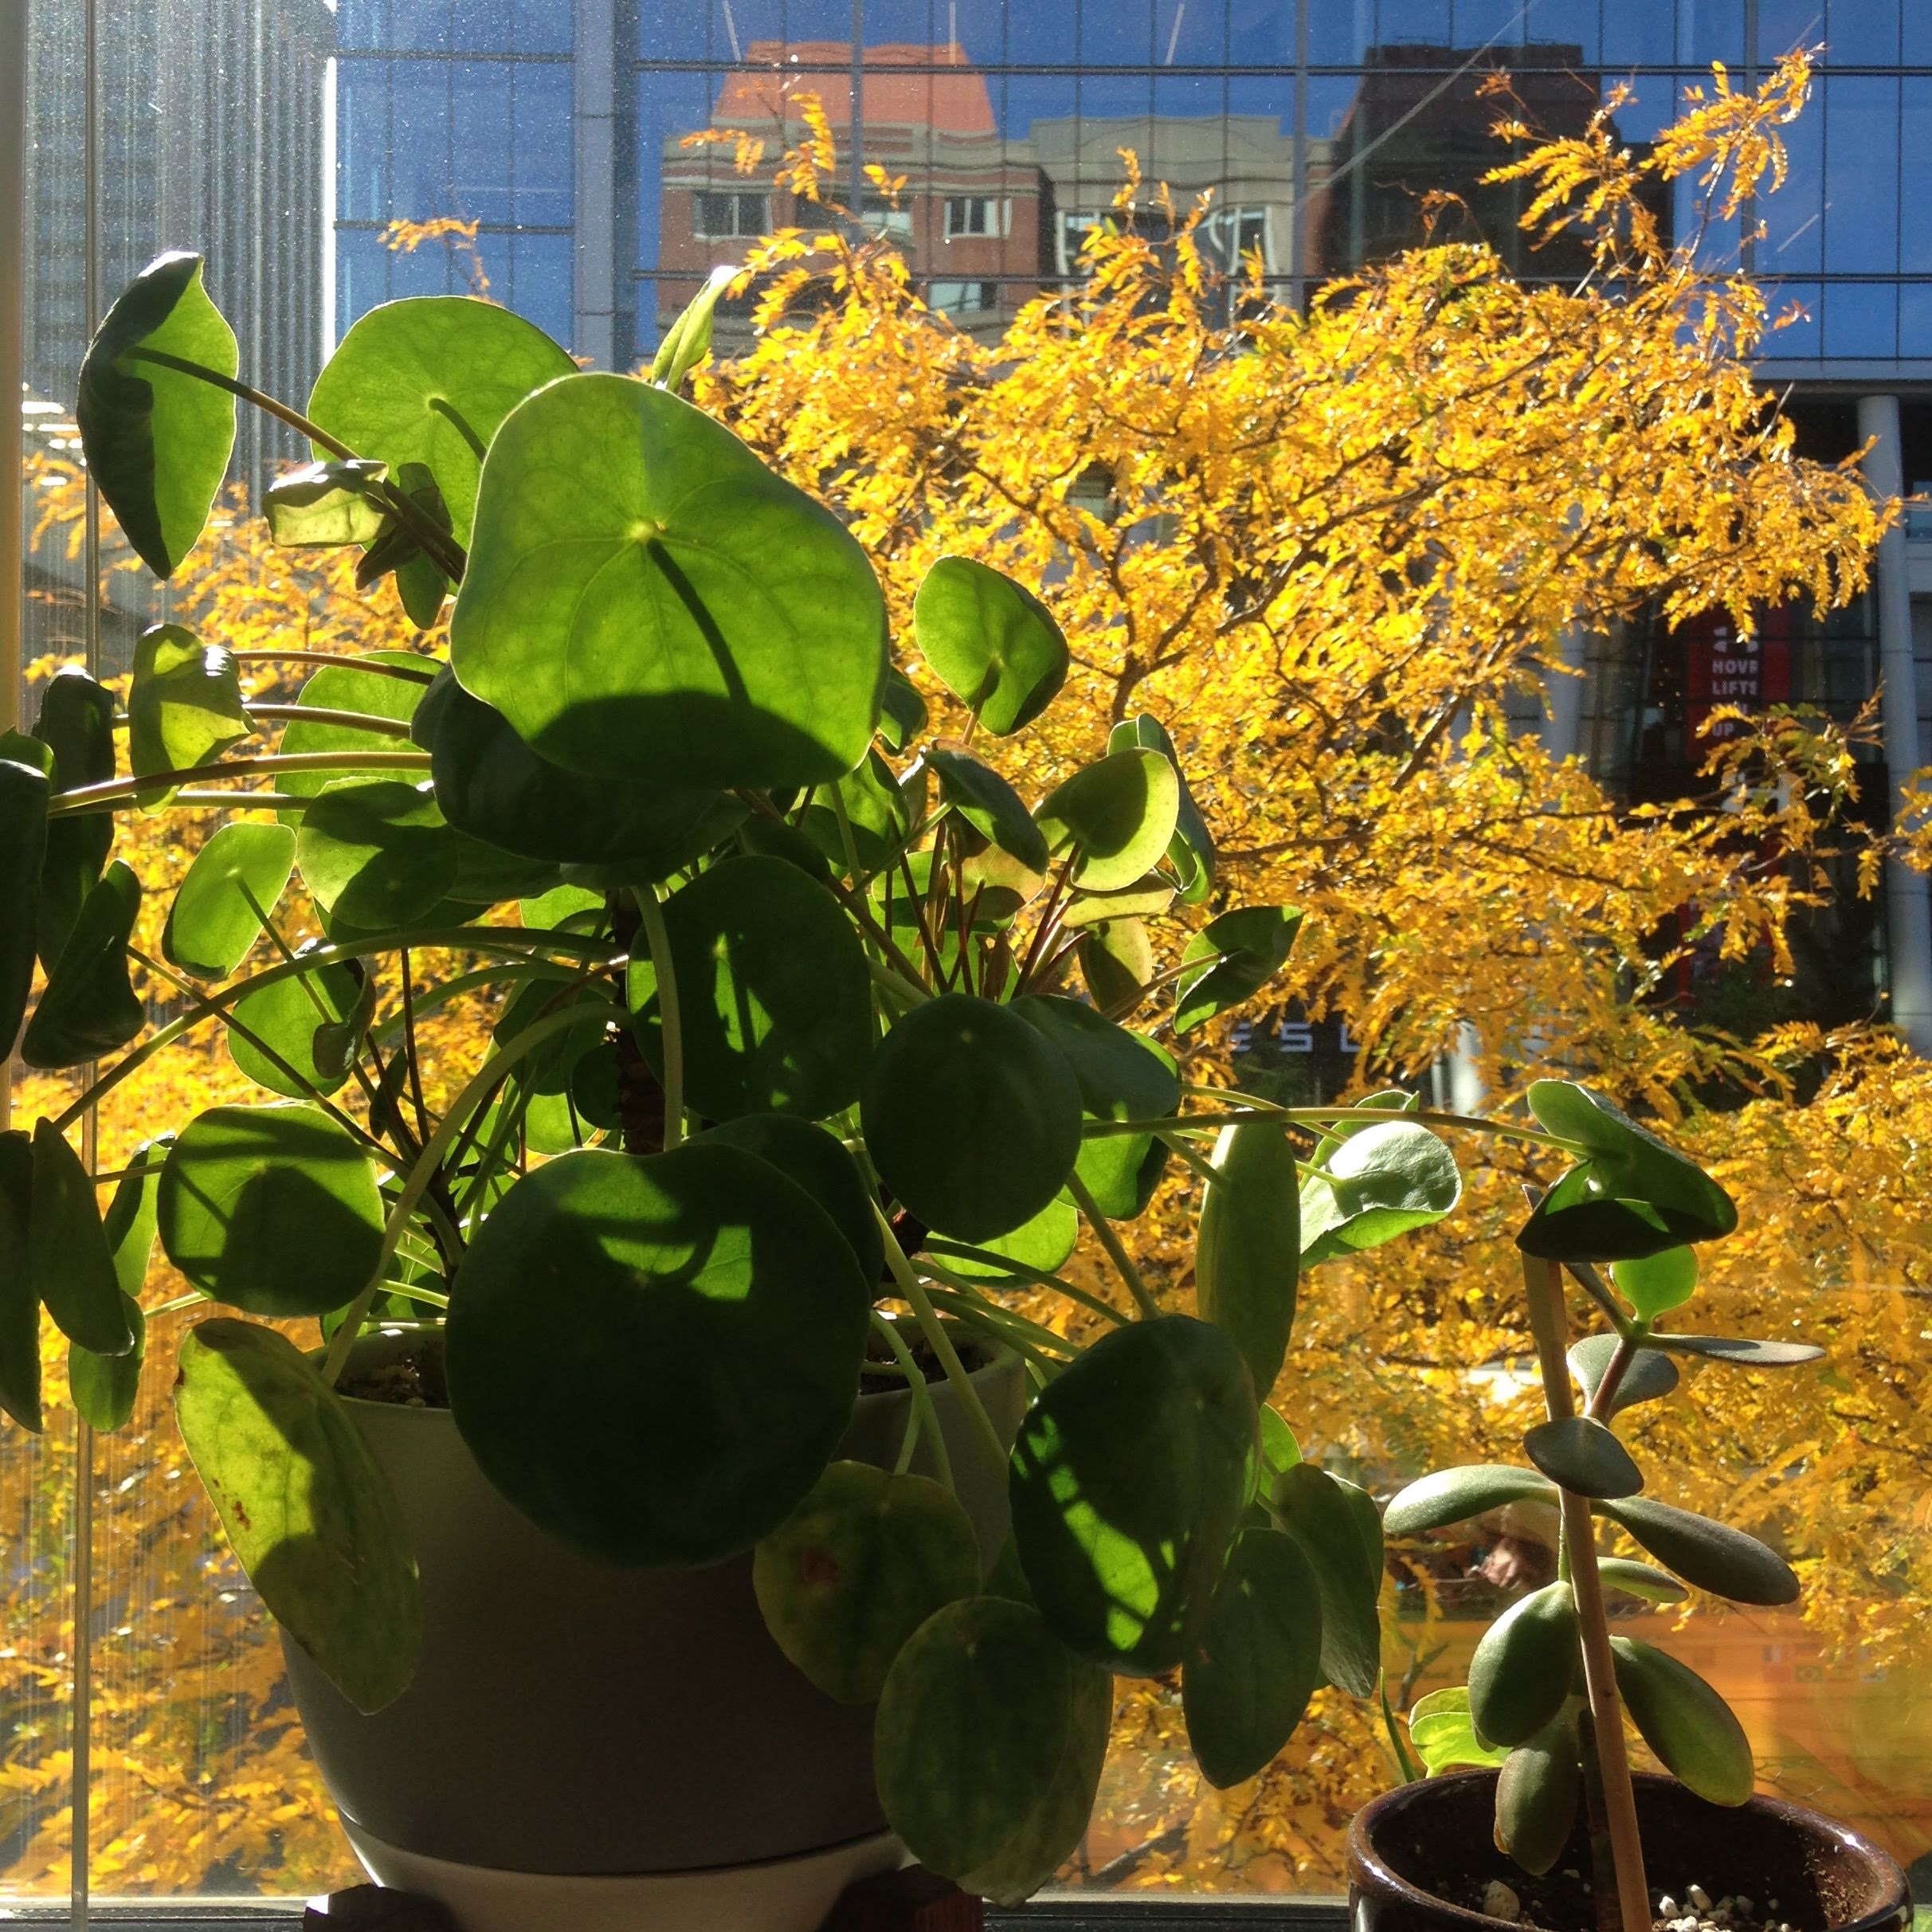 plant-yellow-leaves-pru-window